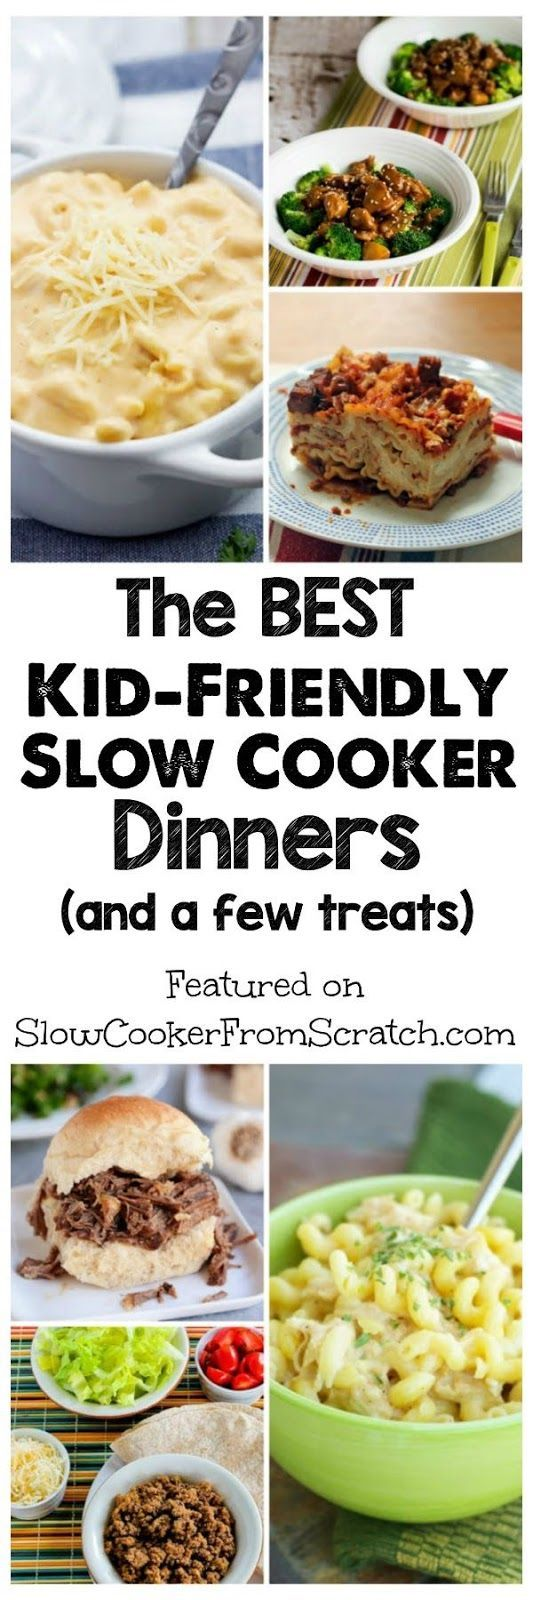 What parent doesn't love it when the kids will eat an easy dinner from the CrockPot, so here are our picks for The BEST Kid-Friendly Slow Cooker Dinners! And there are a few other slow cooker treats that will be a hit with the kids; PIN NOW so you can find this when it's Back-to-School time! [found on SlowCookerFromScr...]: